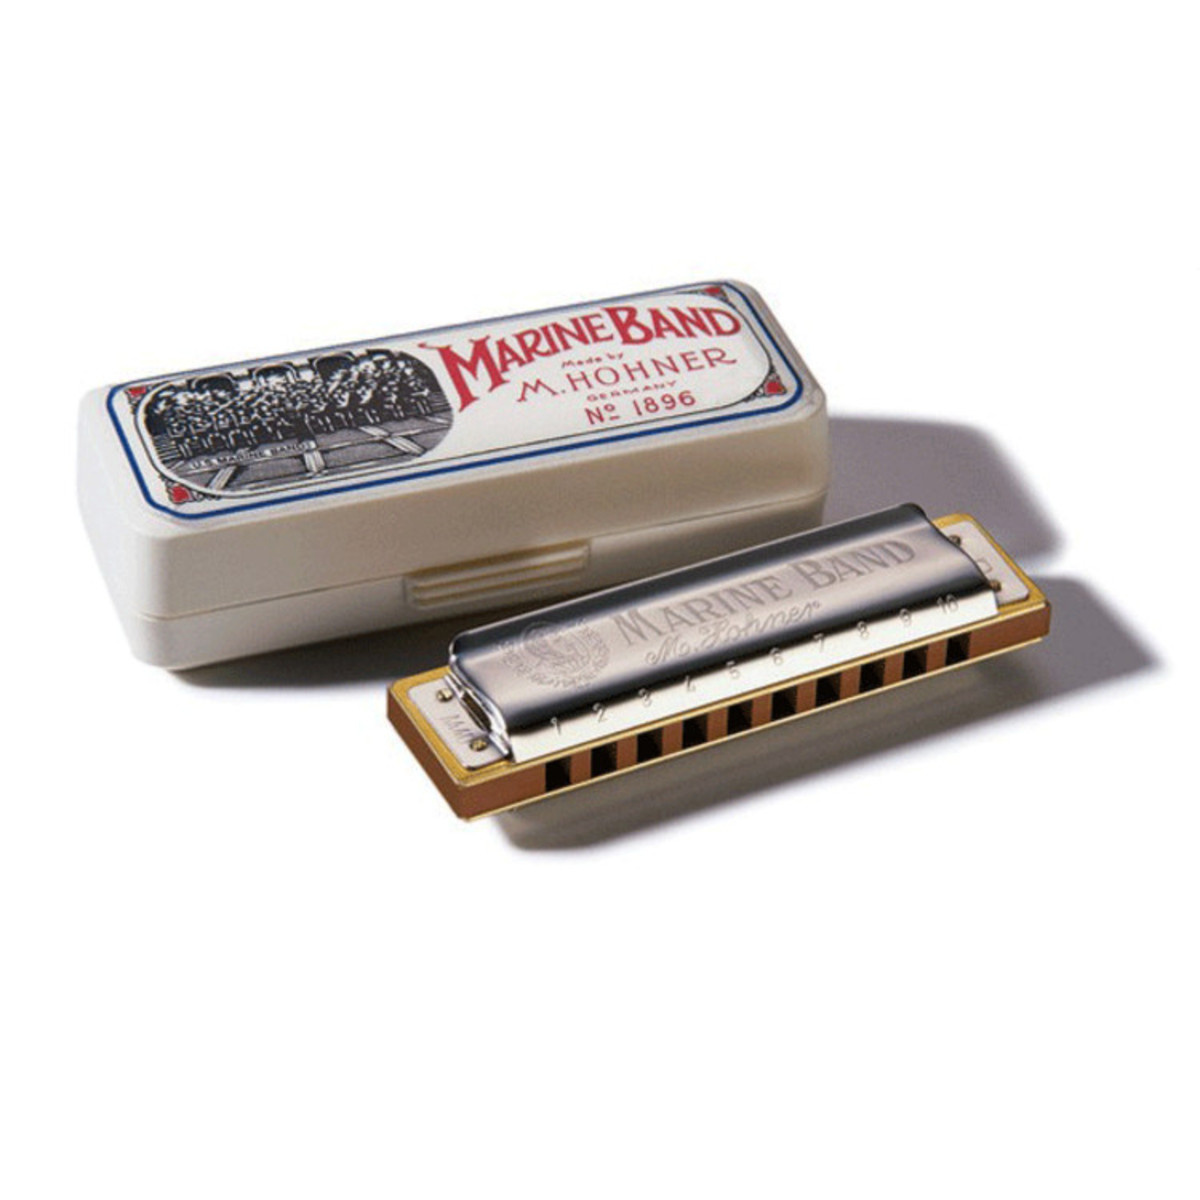 Hohner Hohner Marine Band 1896 Classic Harmonica, Key Of A